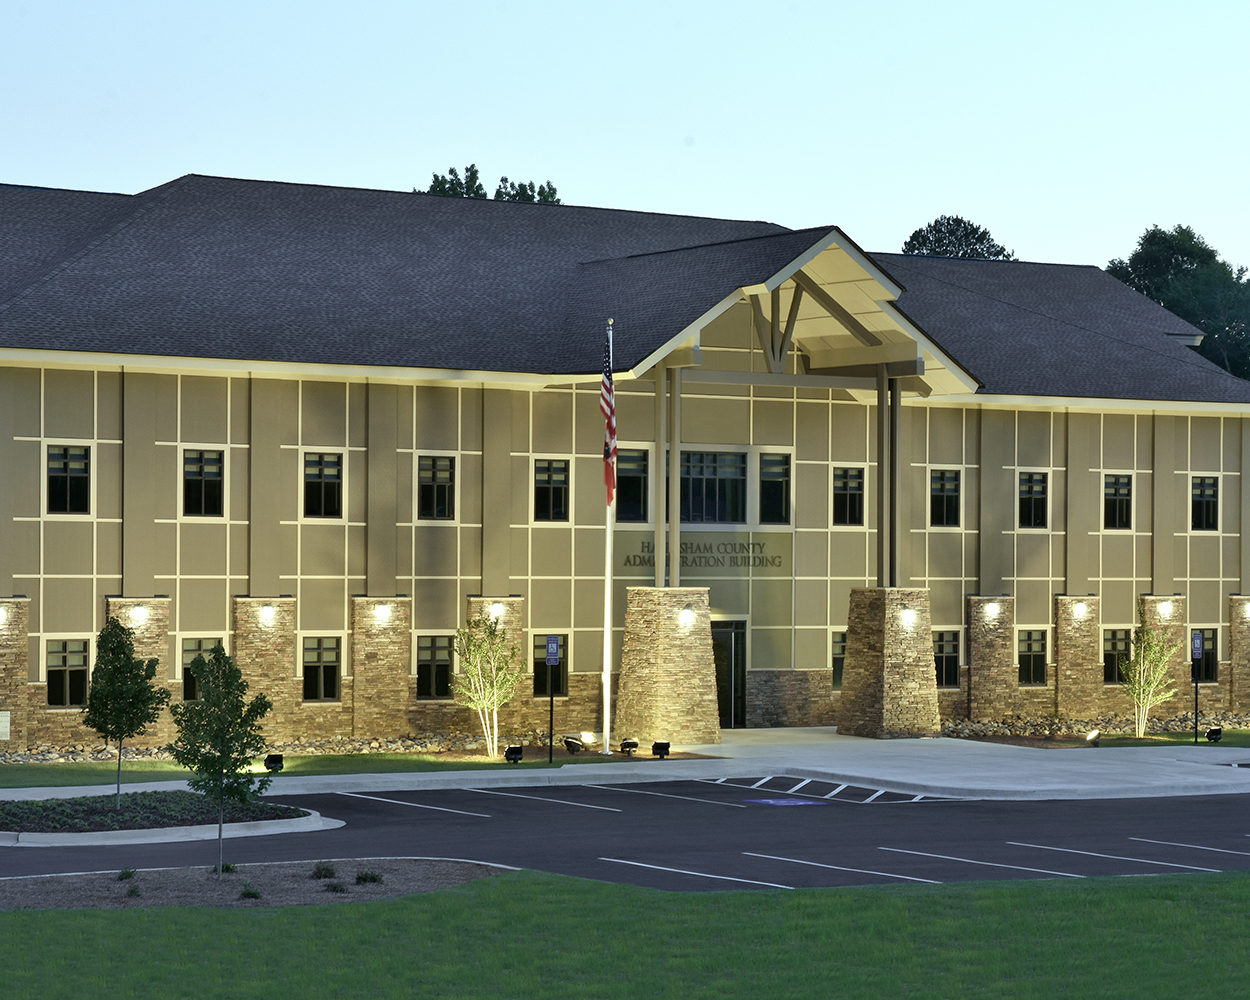 Habersham County Administration Building Clarkesville, GA | Cooper & Company General Contractors